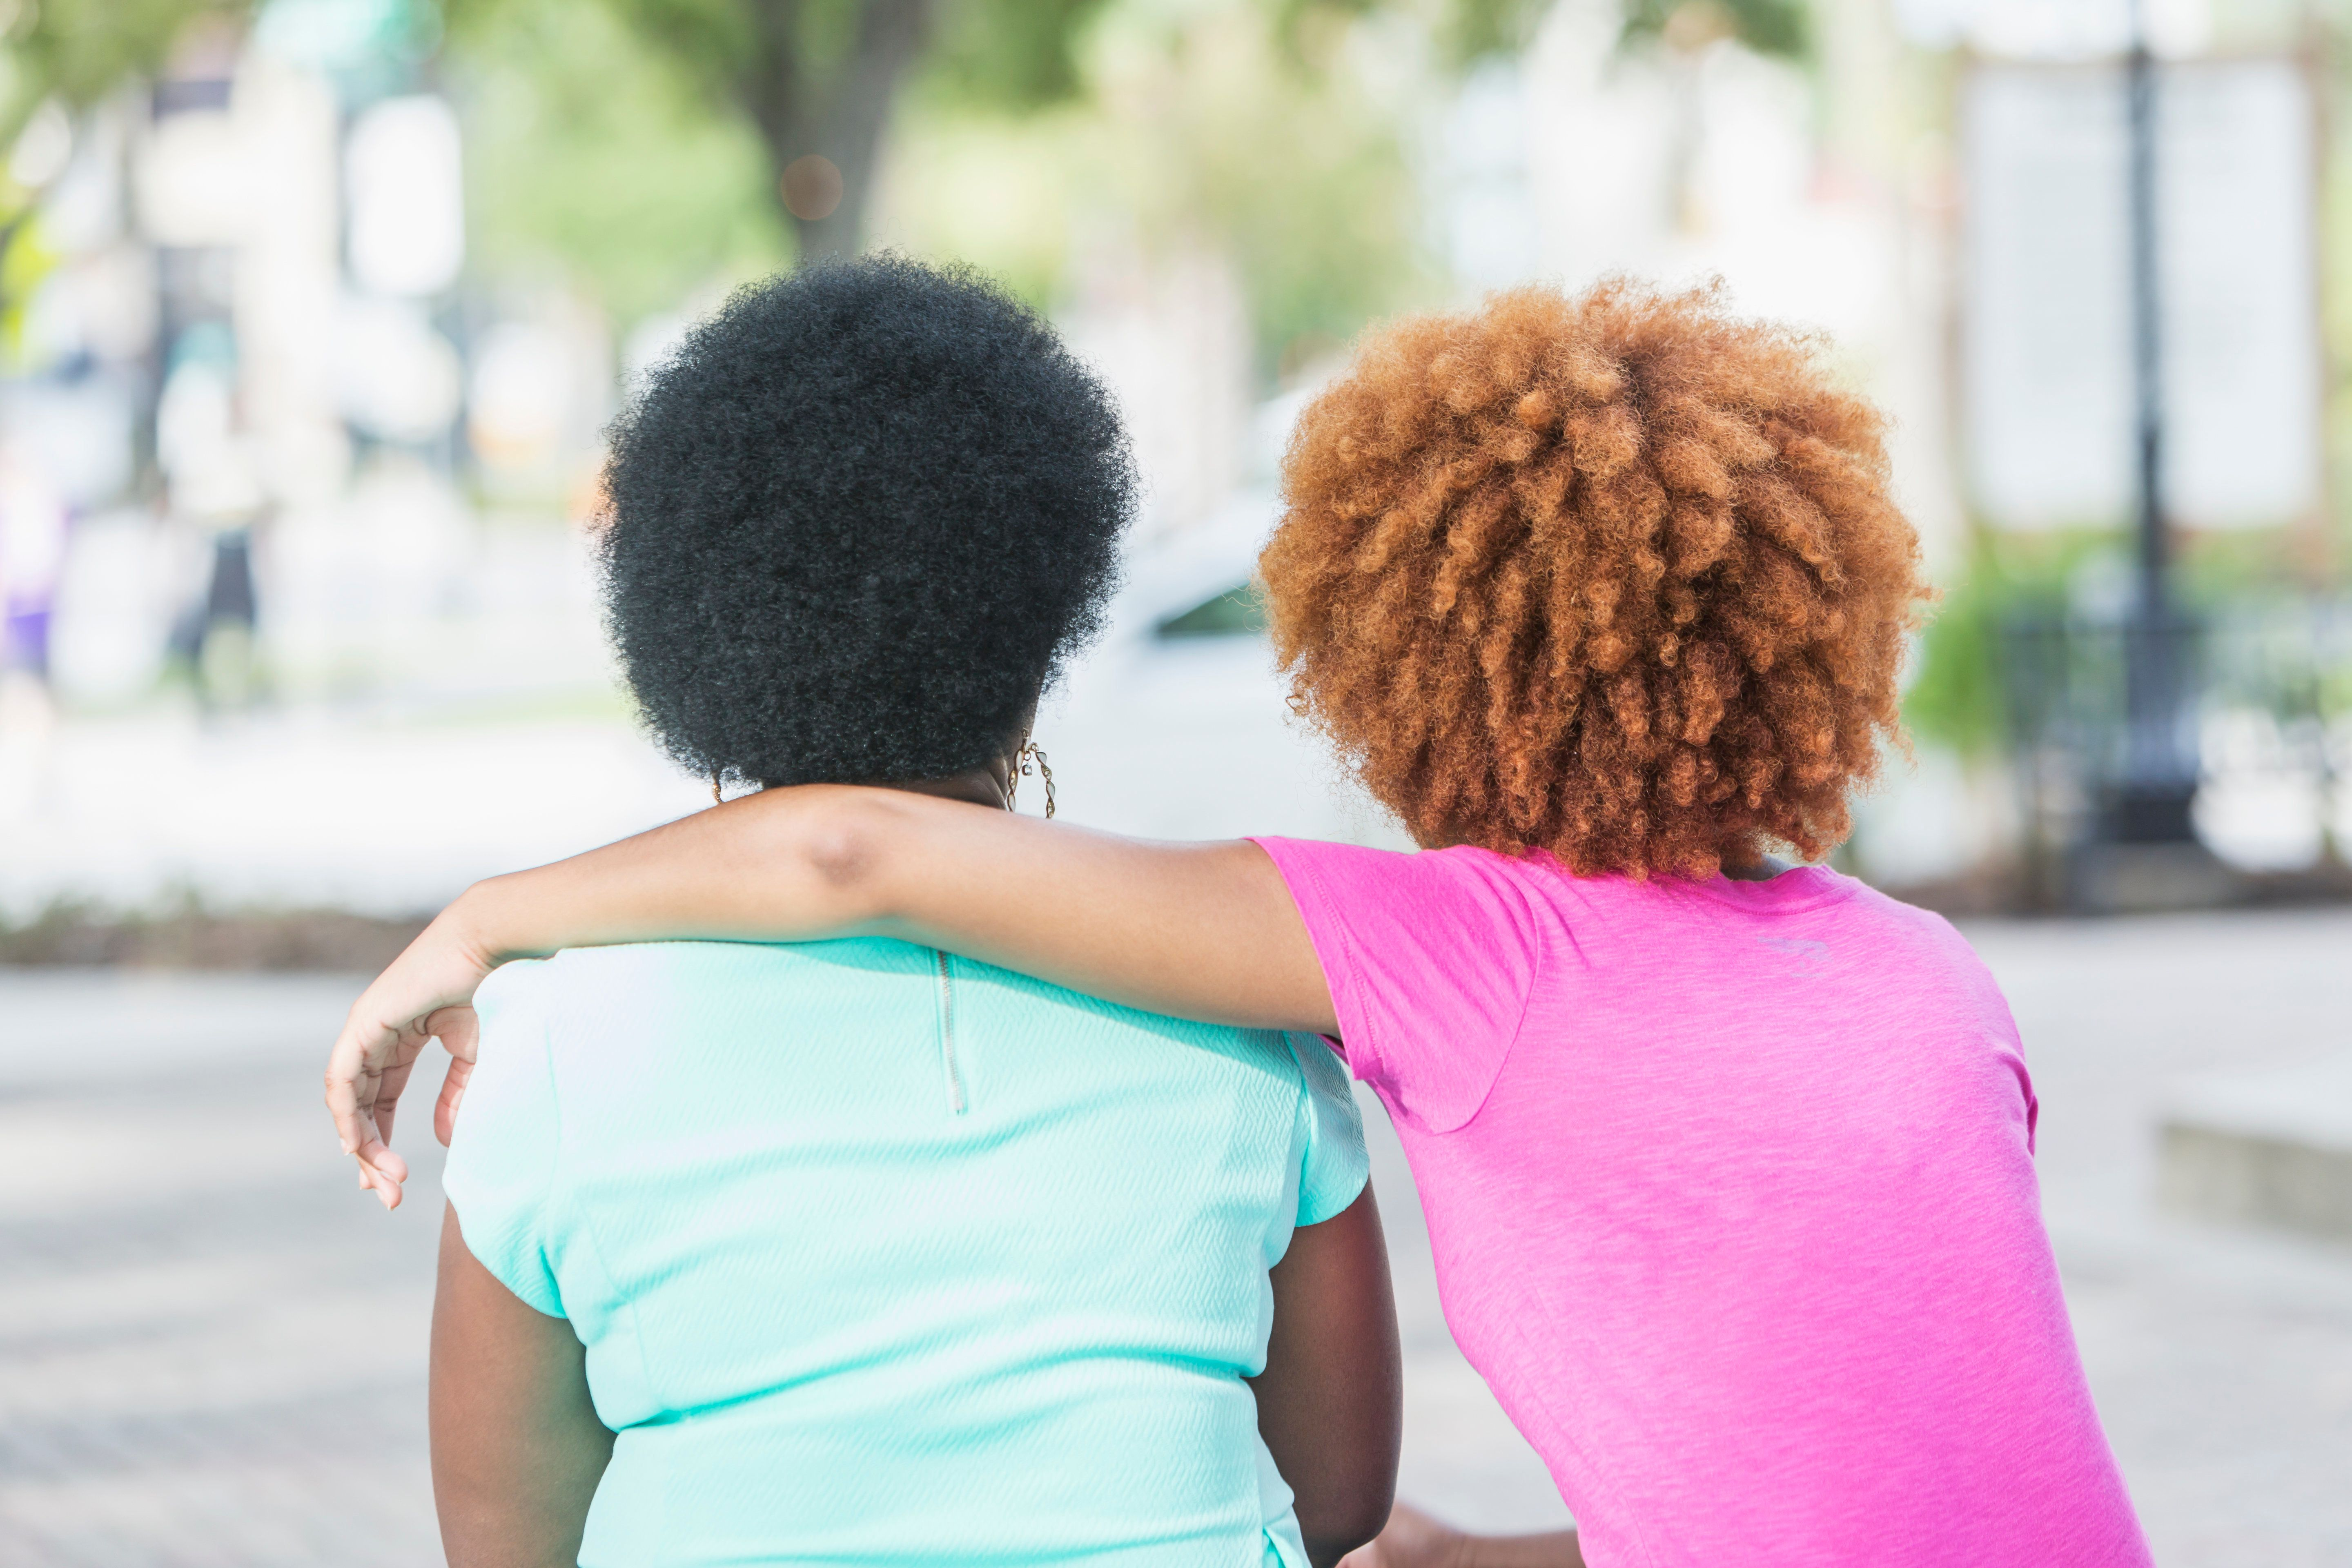 Rear view of an African American woman in her 50s sitting outdoors with her adult daughter, a young woman in her 20s with an afro and red dyed hair.